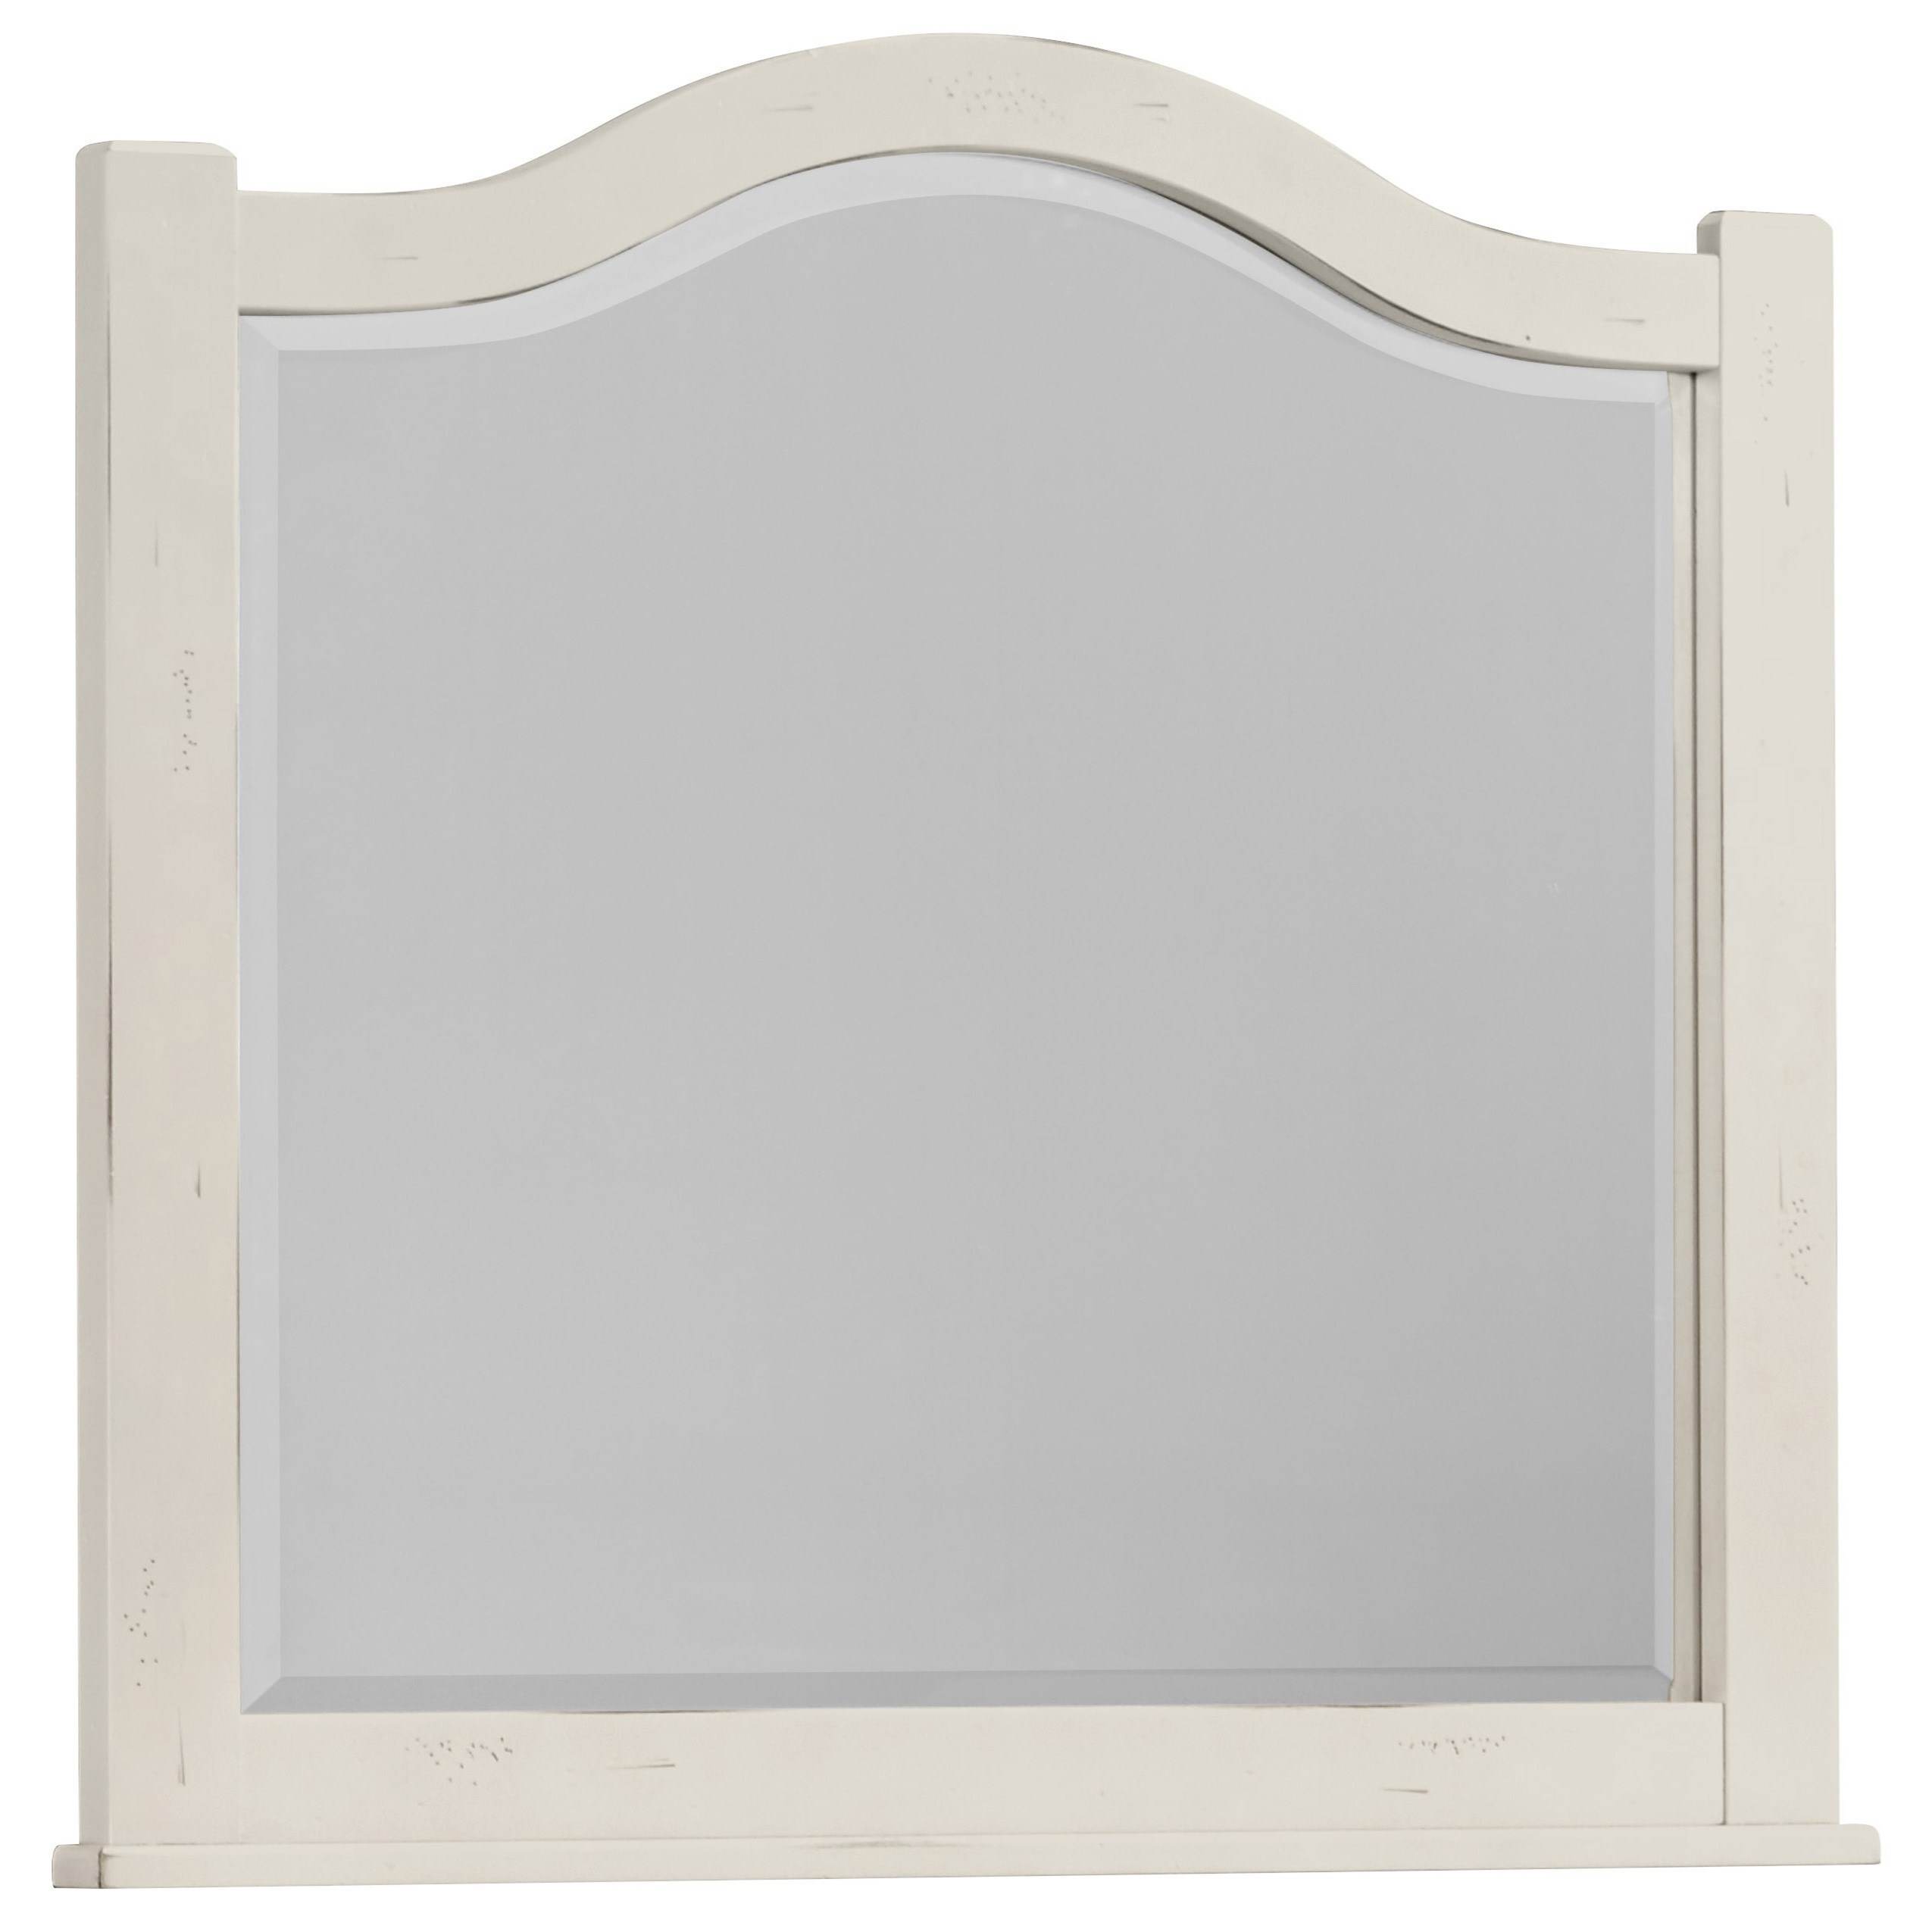 Vaughan Bassett American Maple Arched Mirror - Beveled Glass - Item Number: 404-447